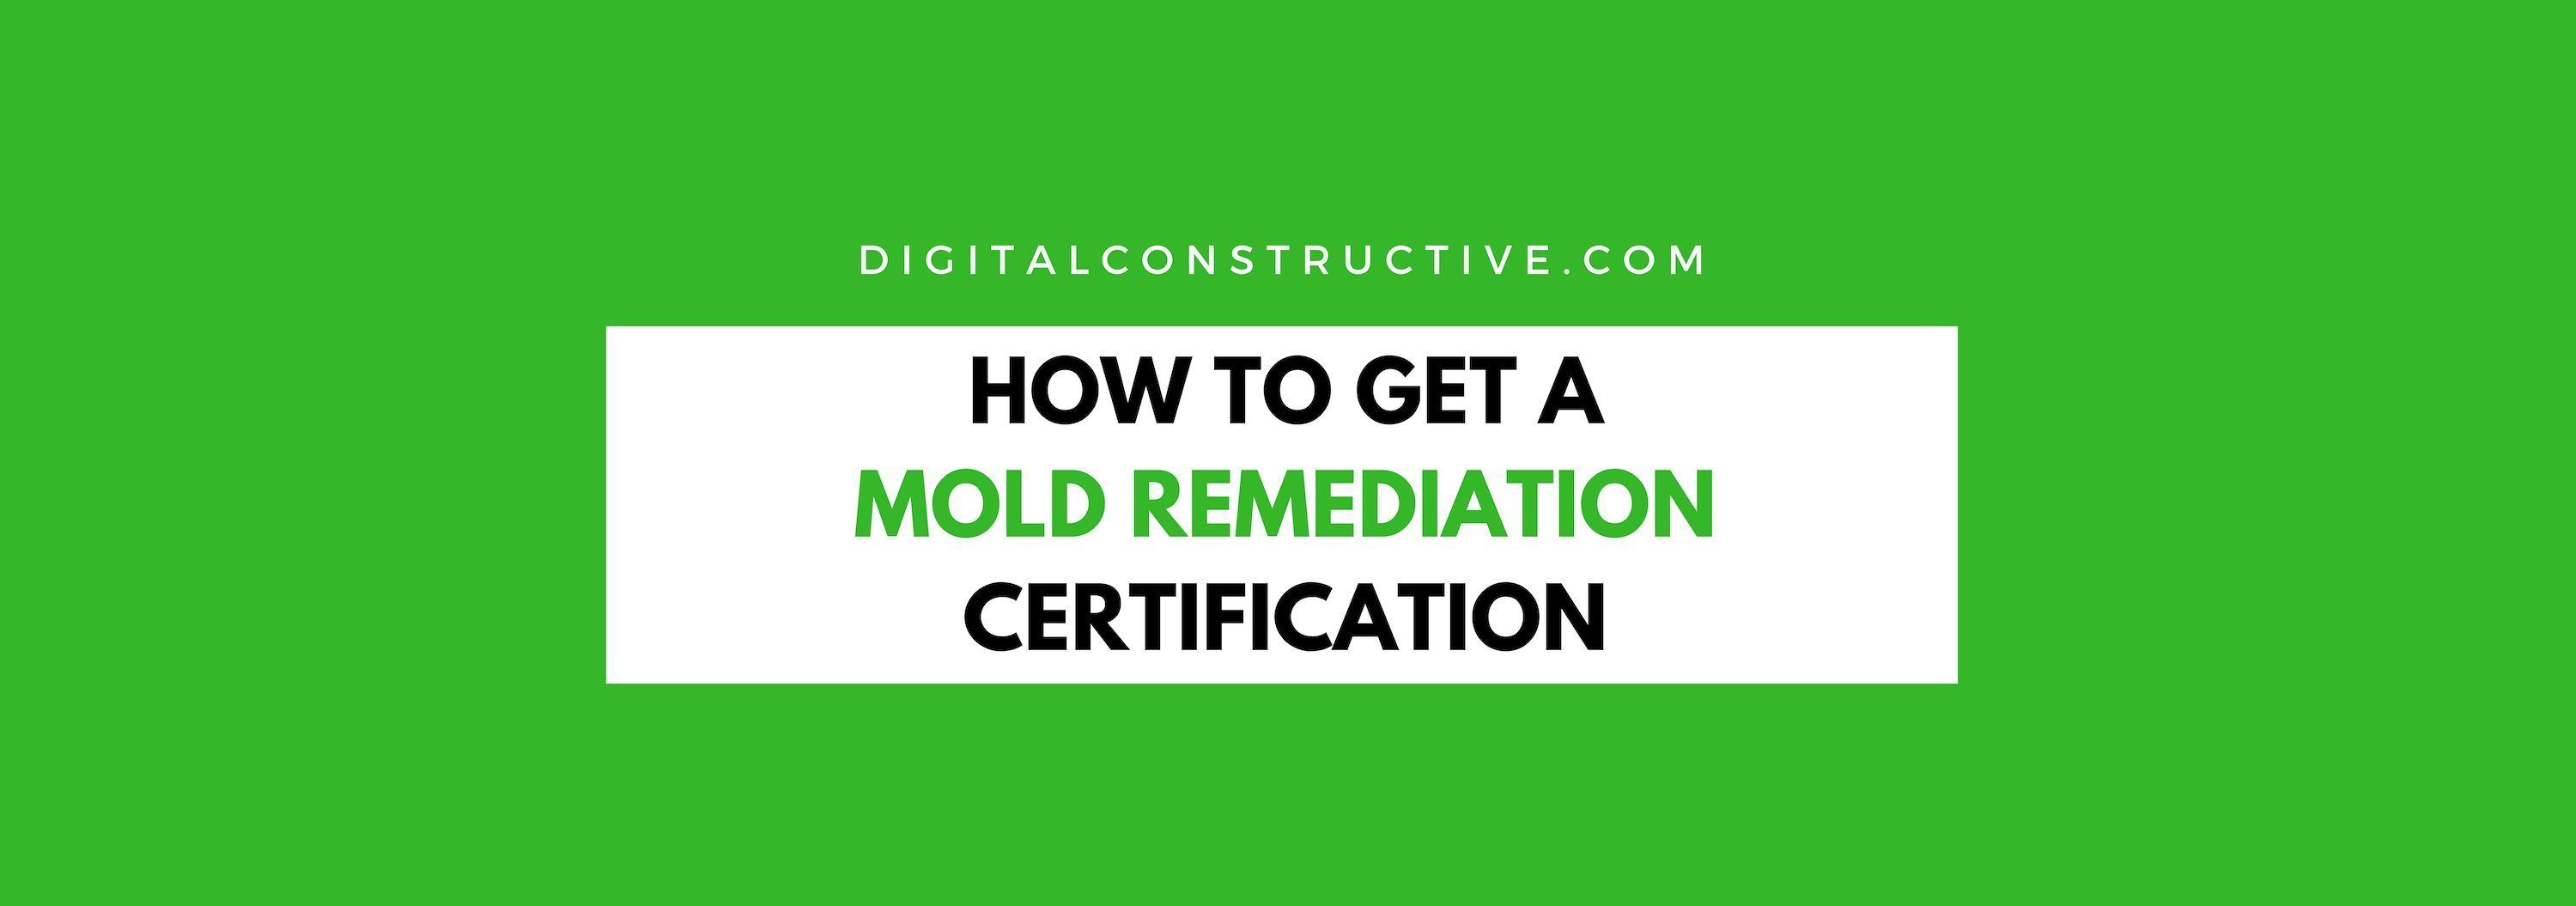 featured image for a blog post about the mold certification